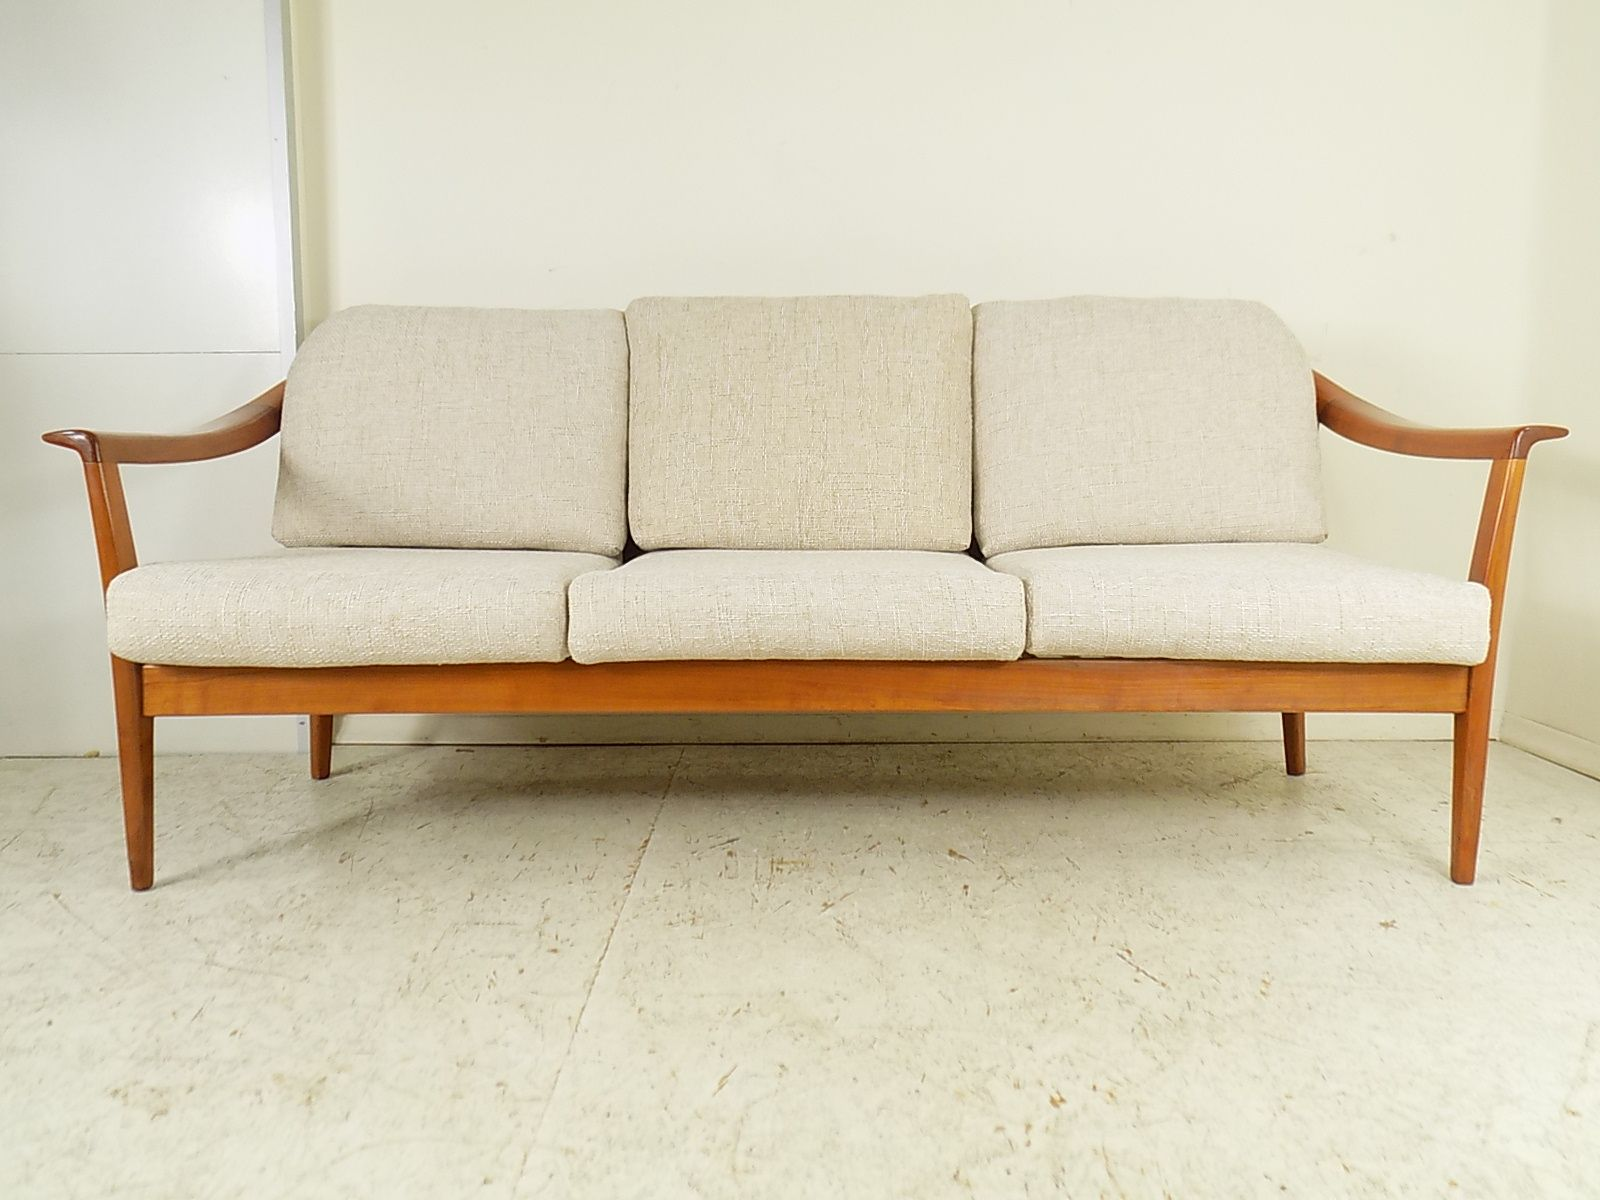 Vintage cherry 3 seater sofa from wilhelm knoll 1960s for for Sofa vor heizung